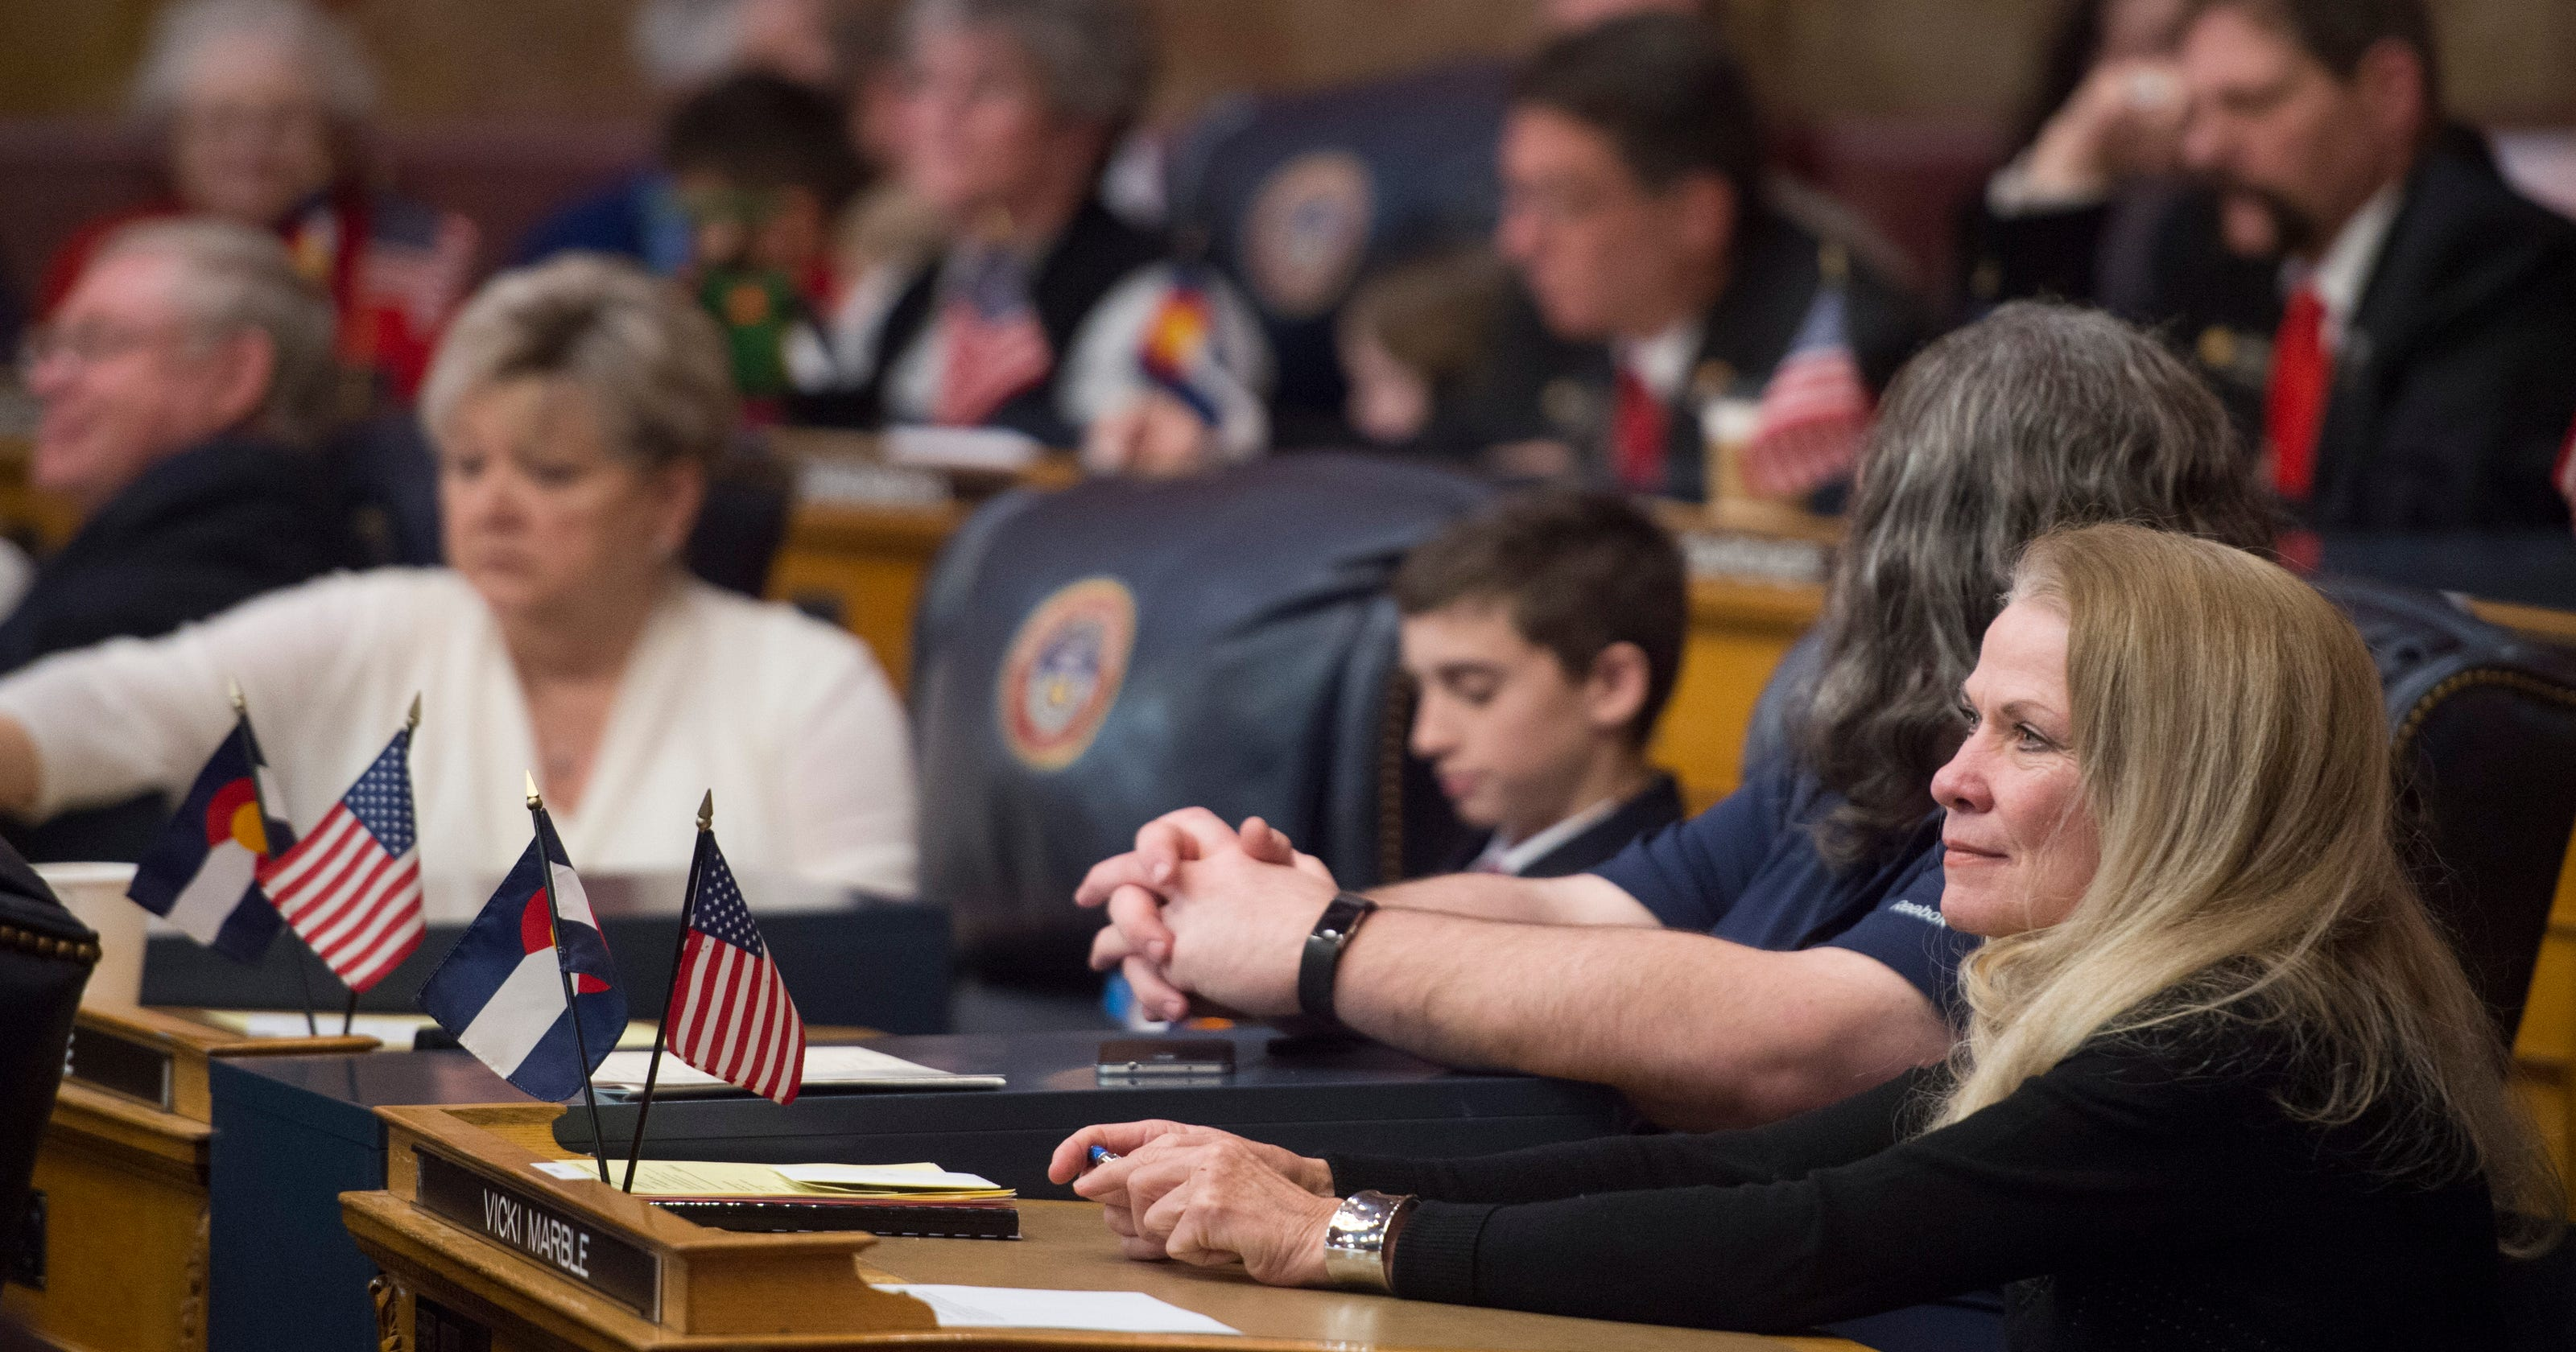 Vicki Marble Defends Comments To Cub Scouts